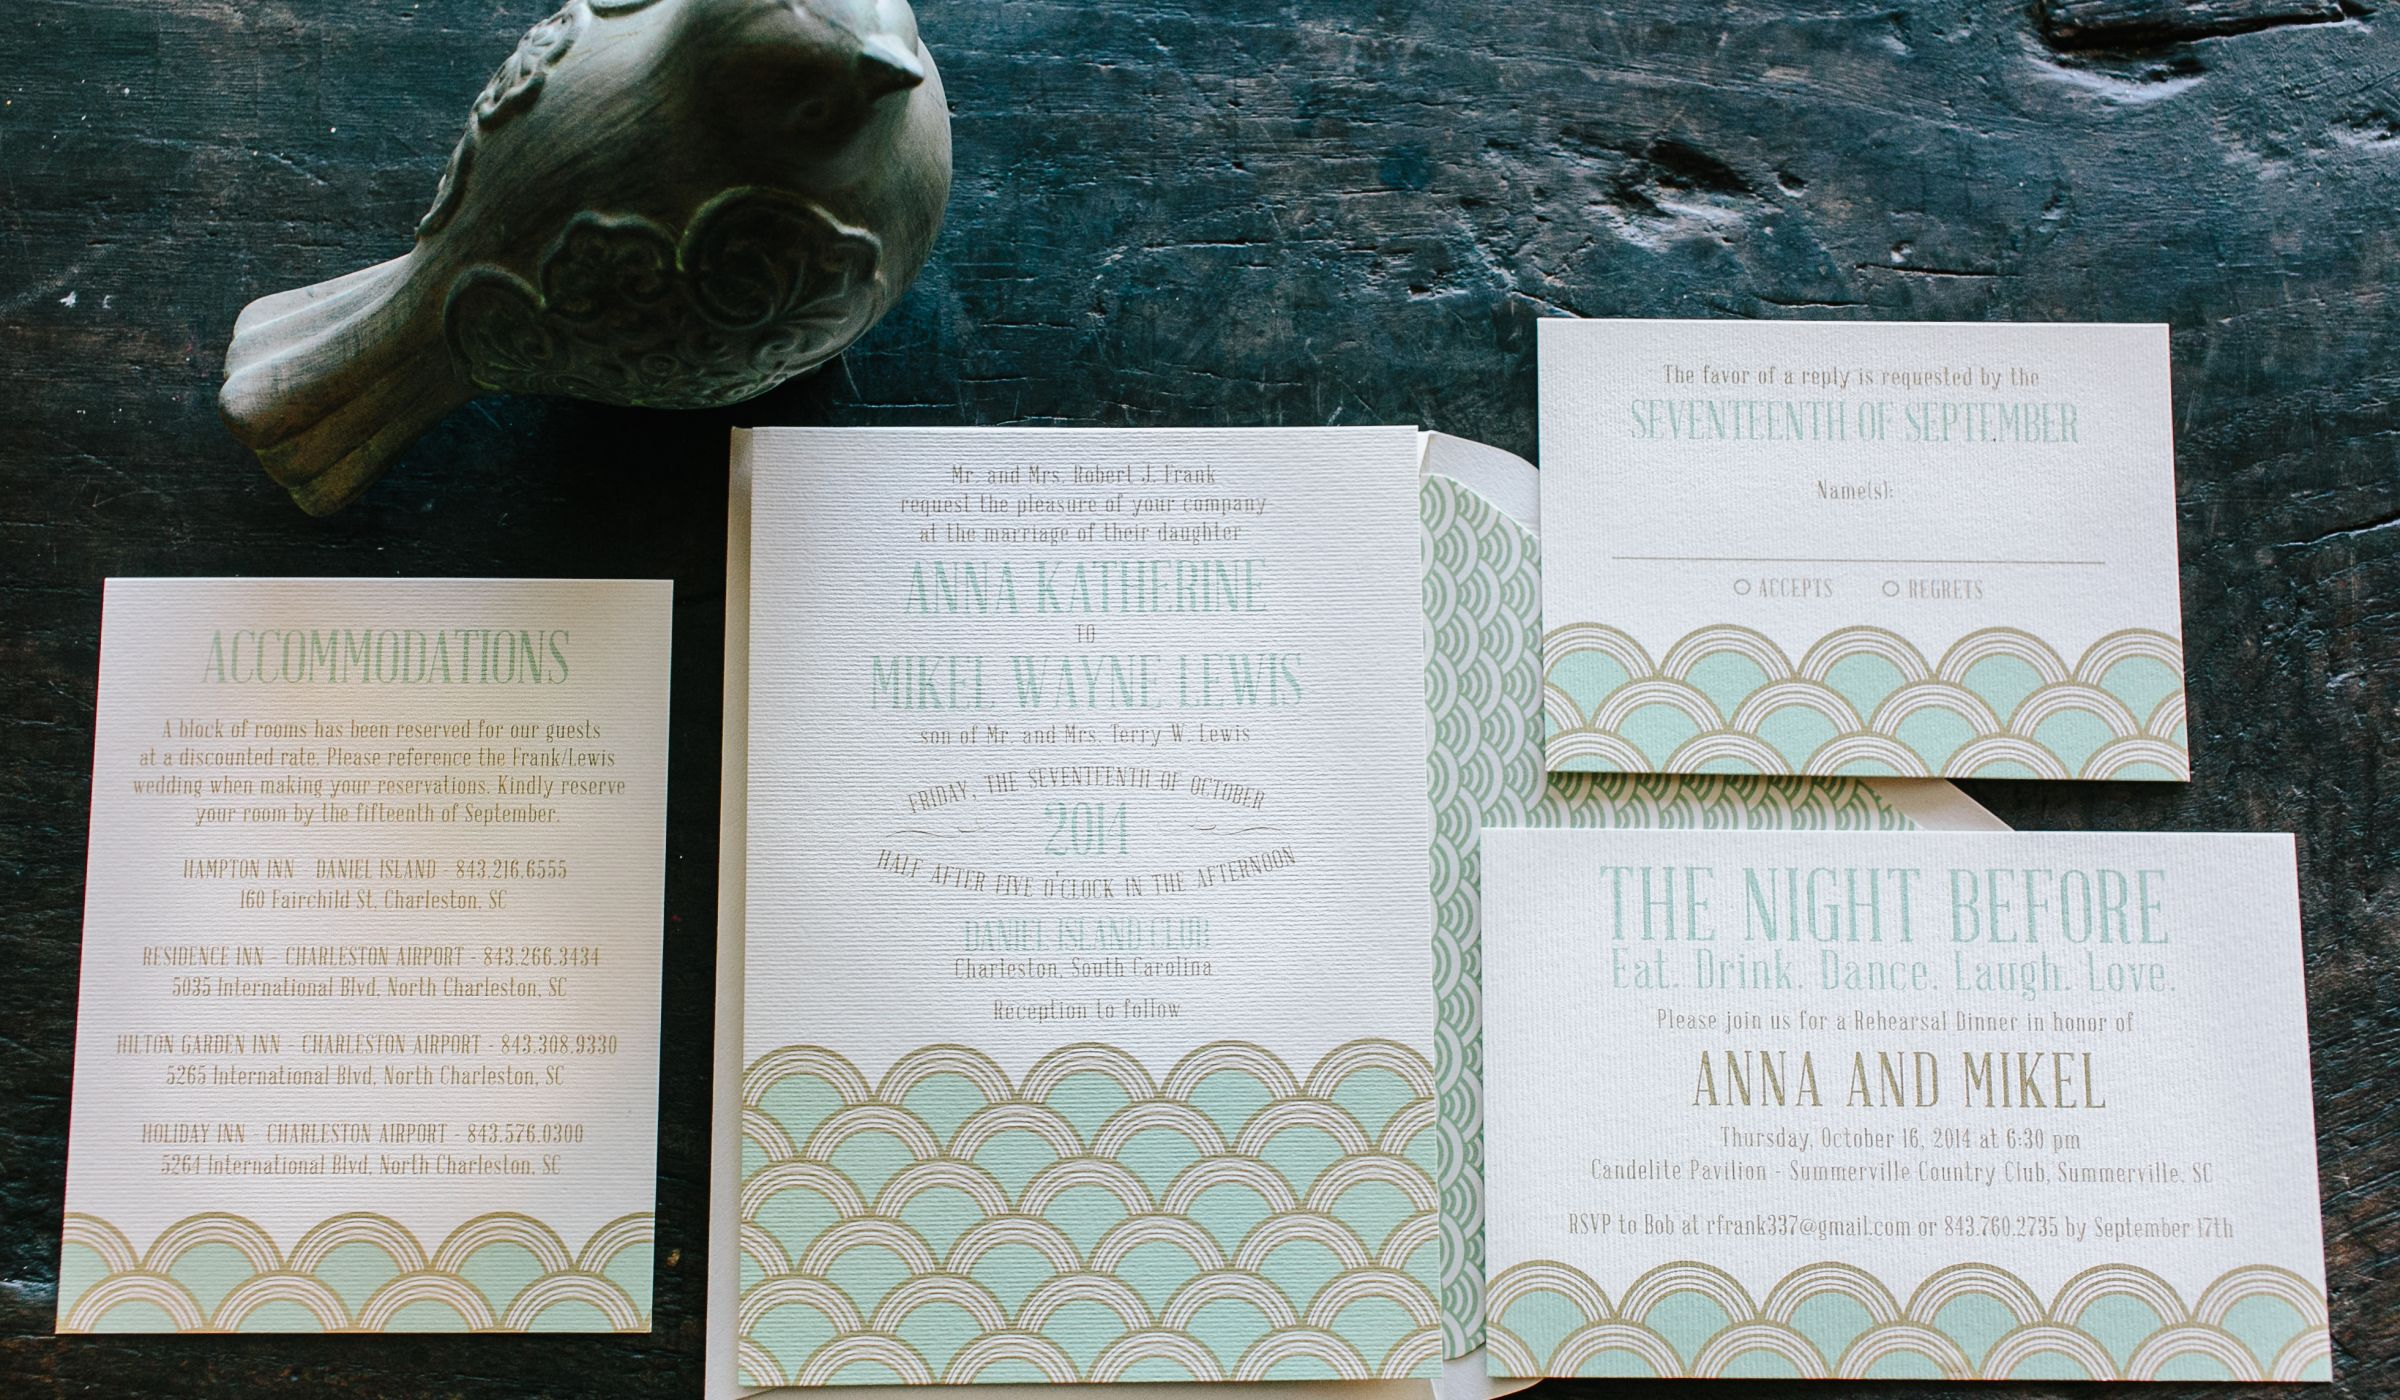 Wording Hotel Room Block Information on Wedding Invitations ...